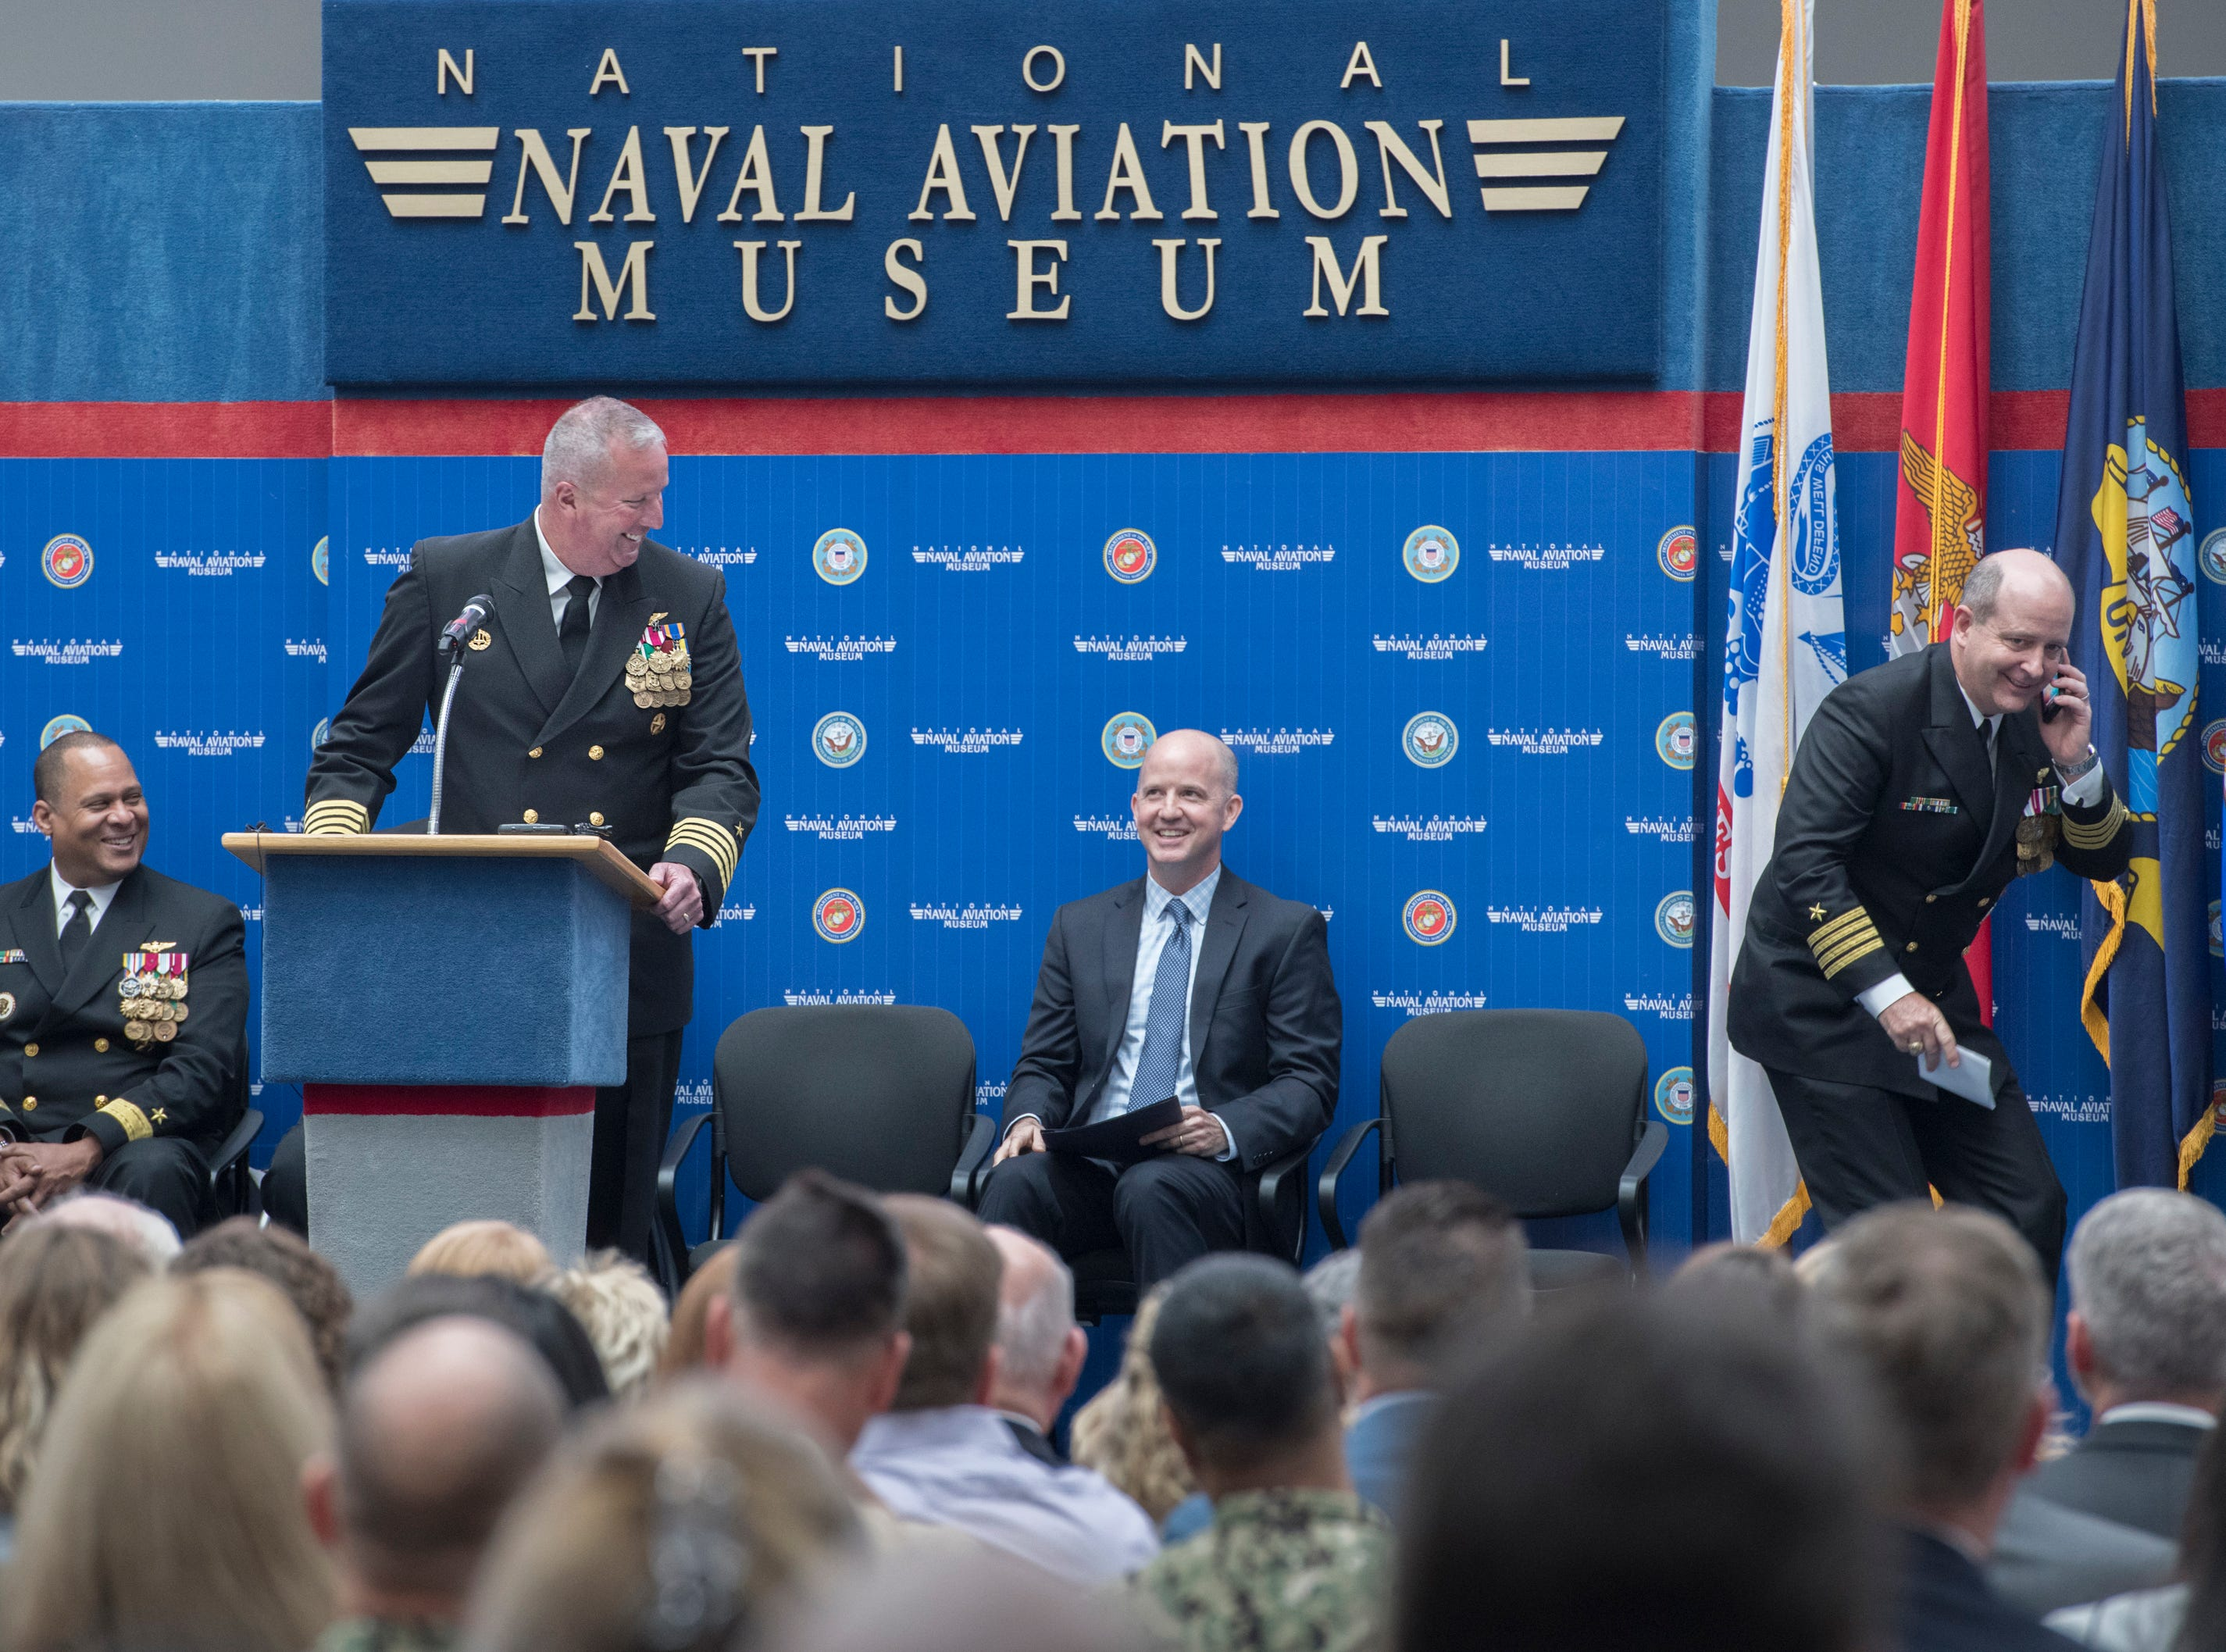 New base commander Capt. Timothy Kinsella, Jr., right, jokely pretends to take a phone call while outgoing commander Capt. Christopher Martin speaks during the change of command ceremony at the National Naval Aviation Museum at Naval Air Station Pensacola on Thursday, March 14, 2019.